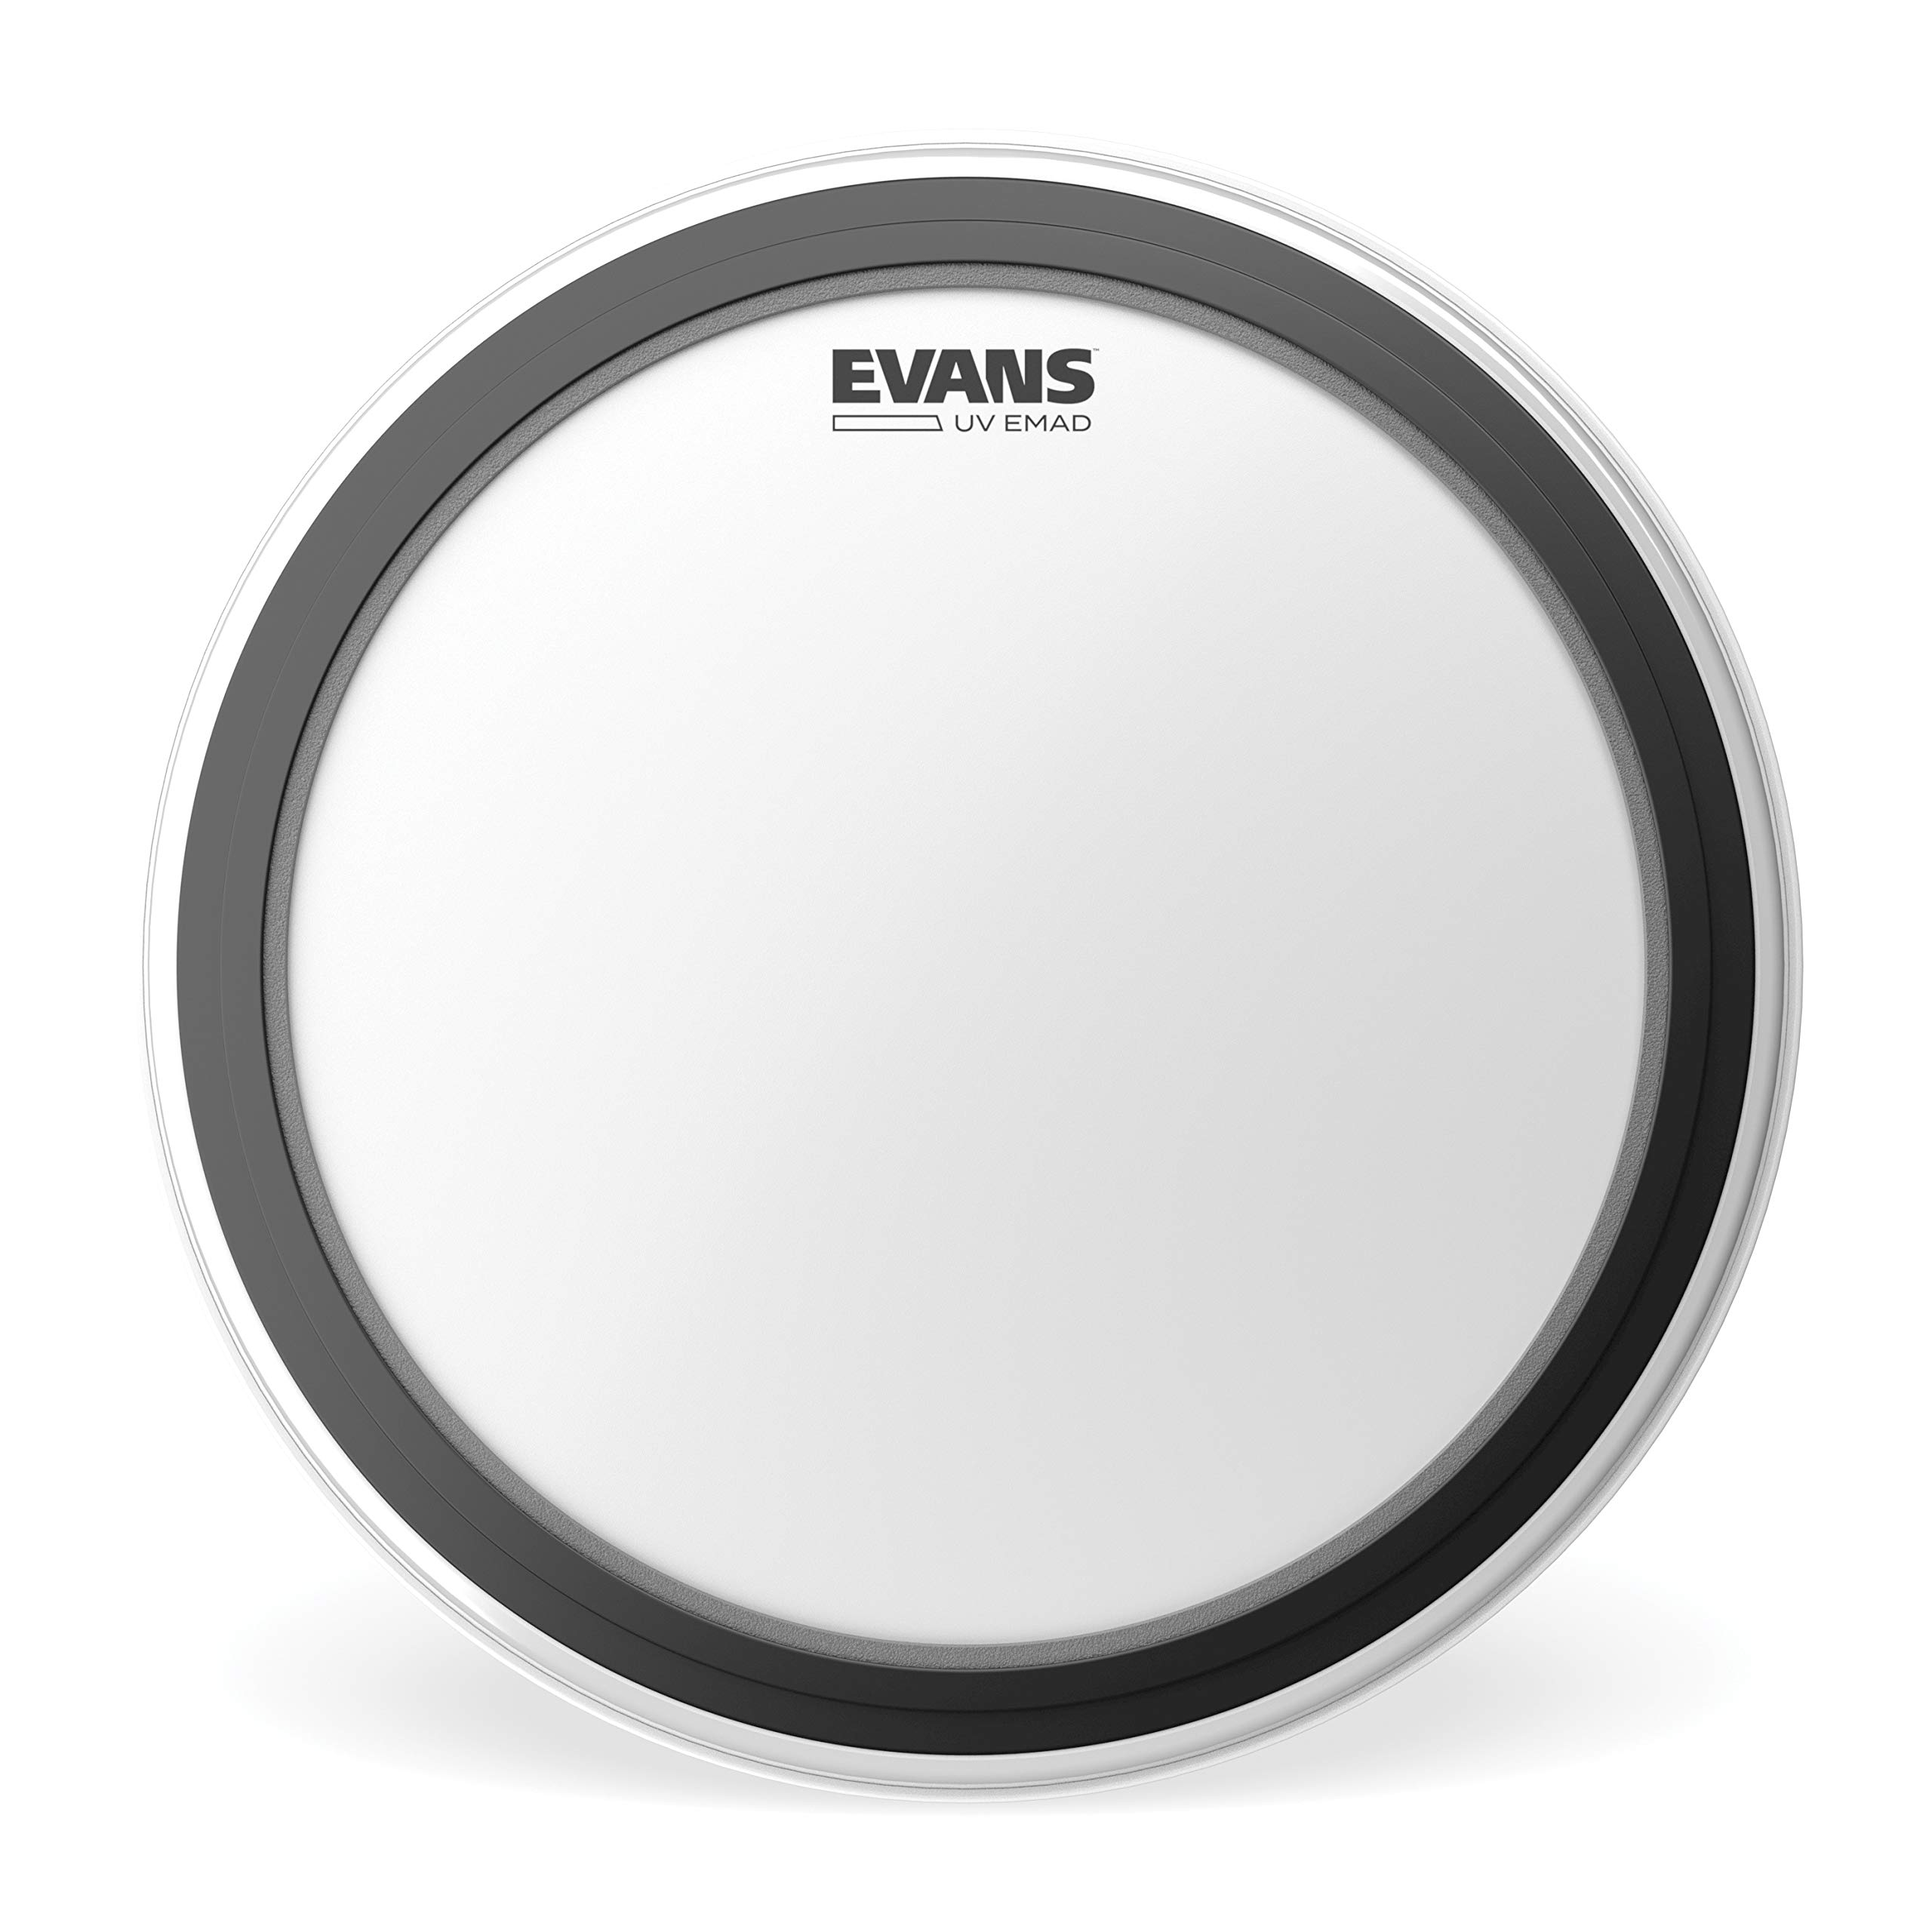 Evans UV EMAD Bass Drumhead, 22 inch by Evans